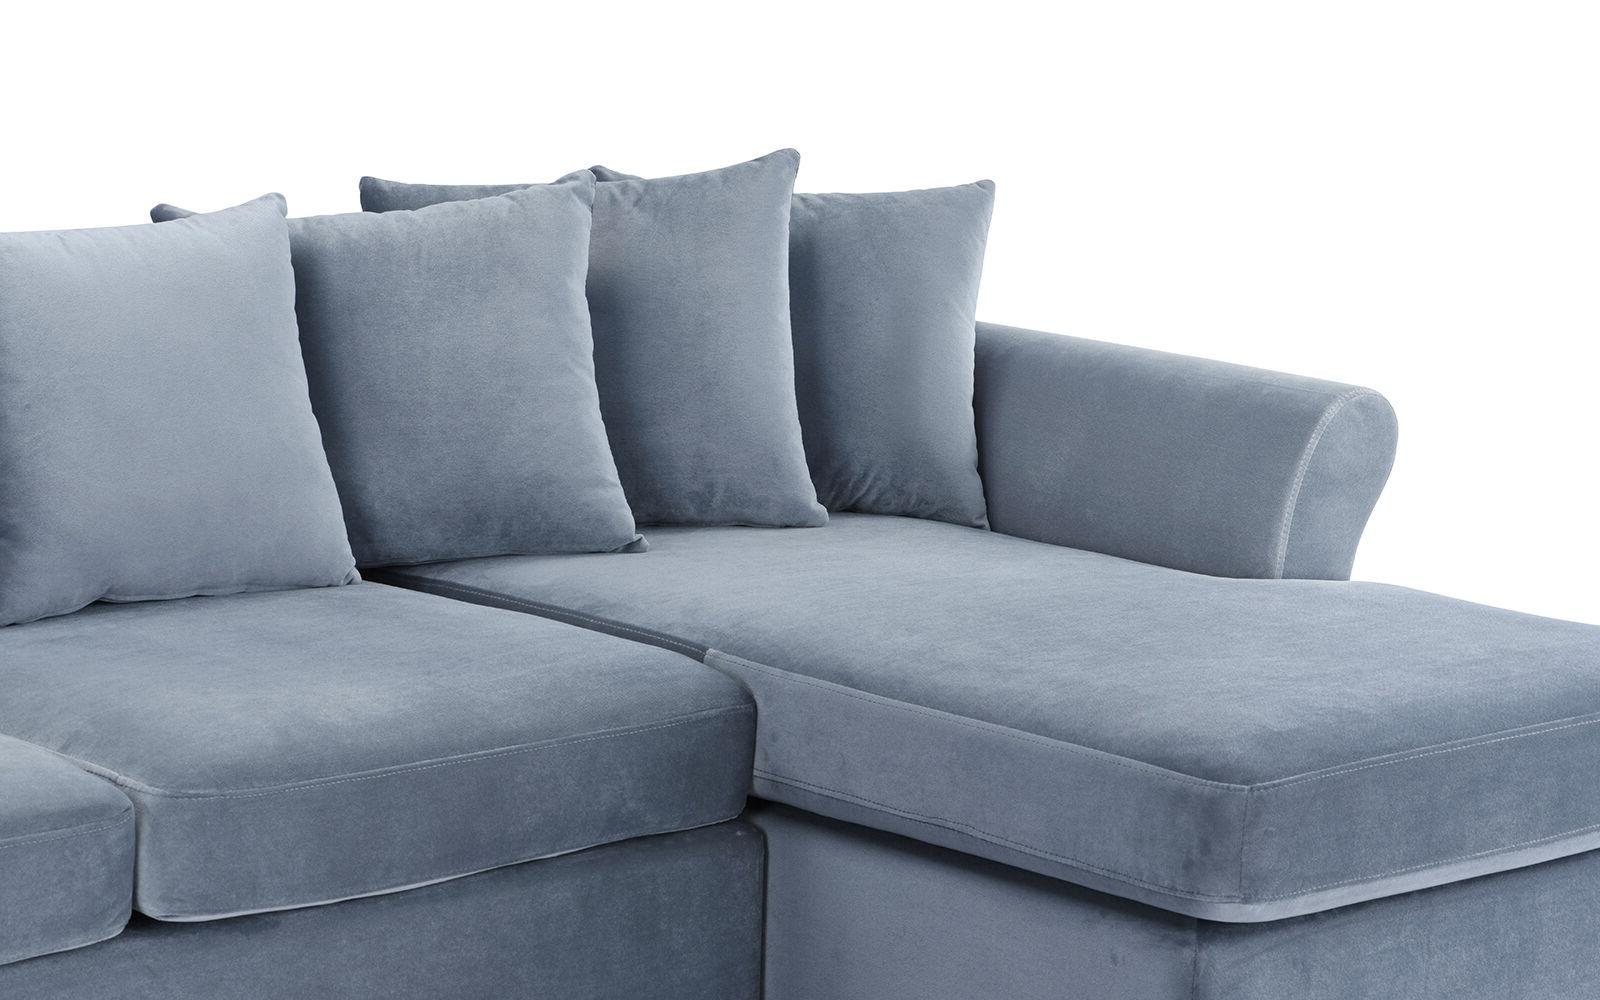 Velvet Classic Couch Chaise Grey